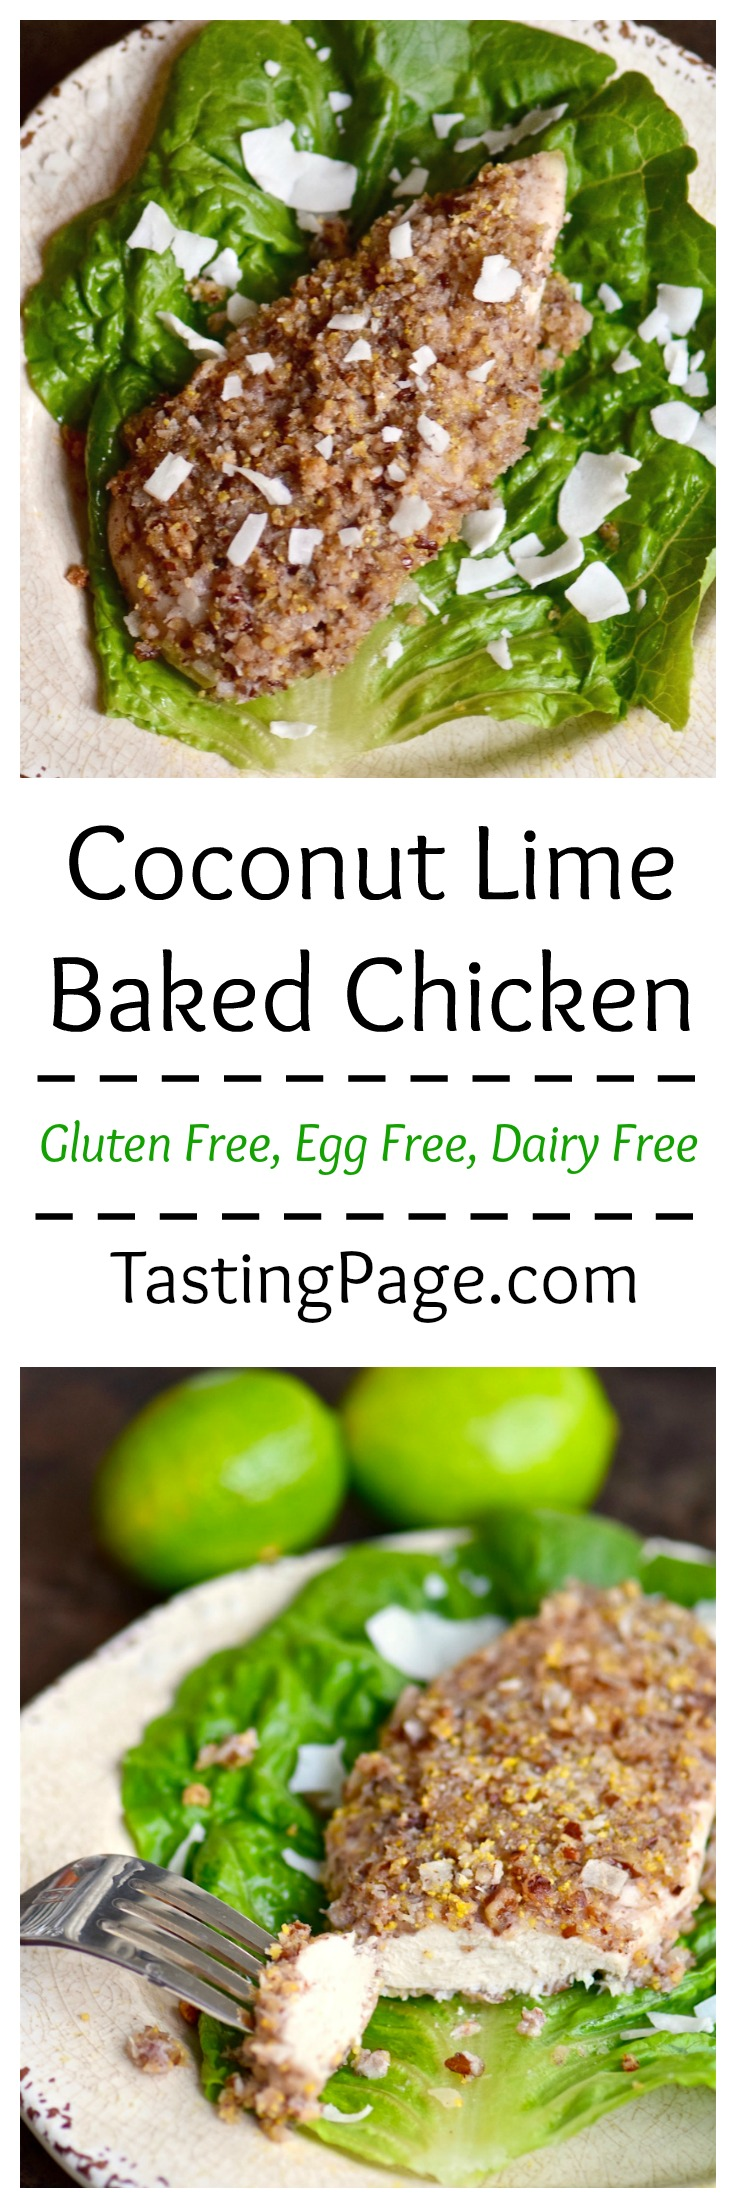 Gluten free dairy free coconut lime baked chicken | TastingPage.com